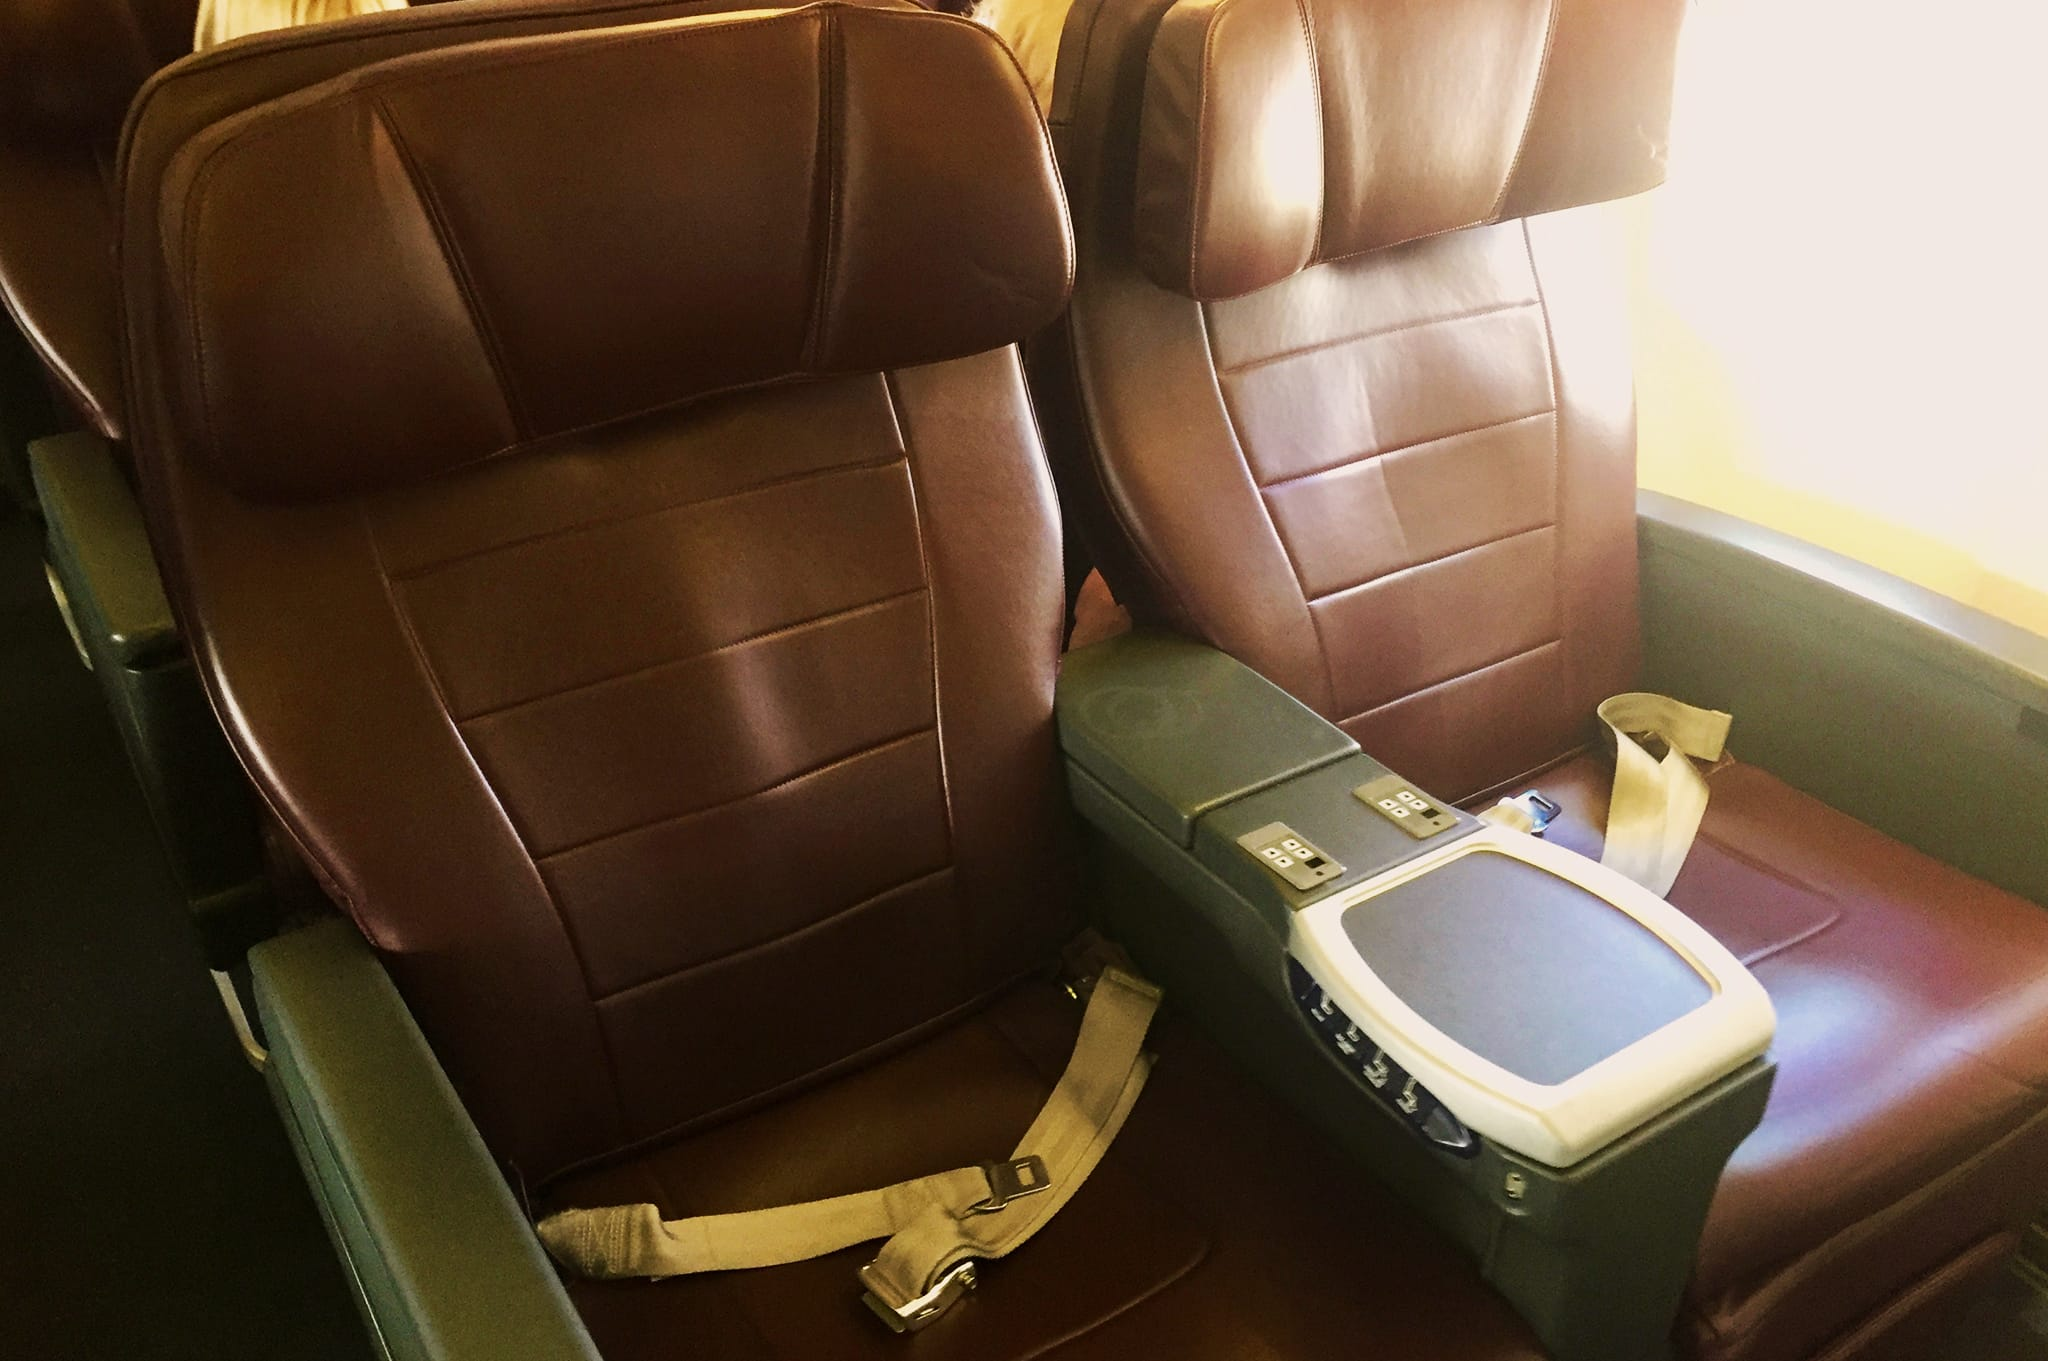 Qantas 737 Business Class Seats